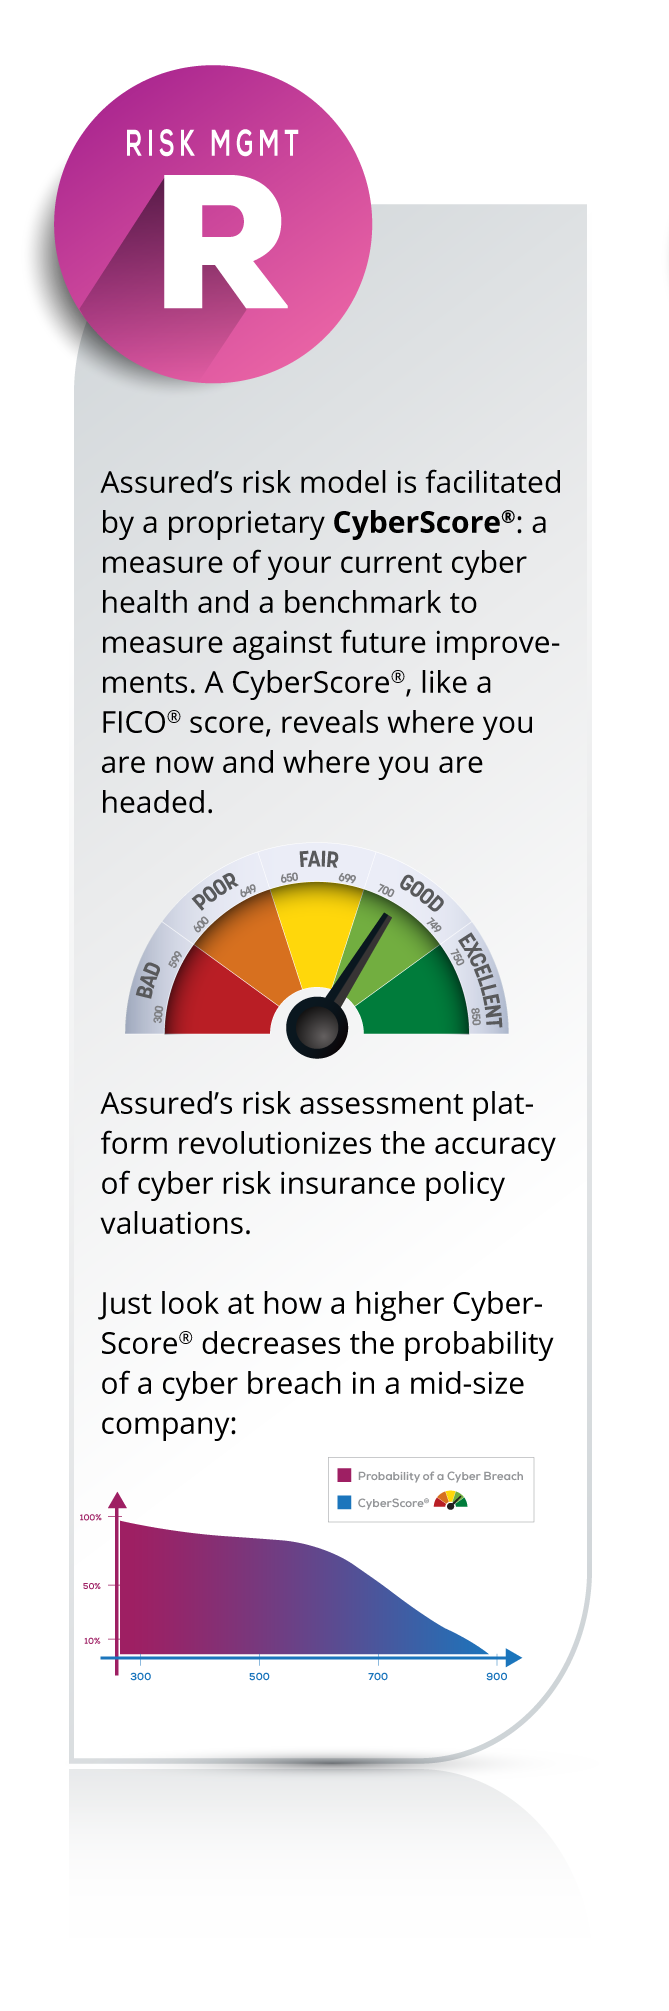 Assured's risk model is facilitated by a proprietary CyberScore®: a measure of your current cyber health and a benchmark to measure against future improvements. A CyberScore®, like a FICO® score, reveals where you are now and where you are headed. Assured's risk assessment platform revolutionizes the accuracy of cyber risk insurance policy valuations. A higher CyberScore® greatly decreases the probability of a cyber breach in a mid-size company.